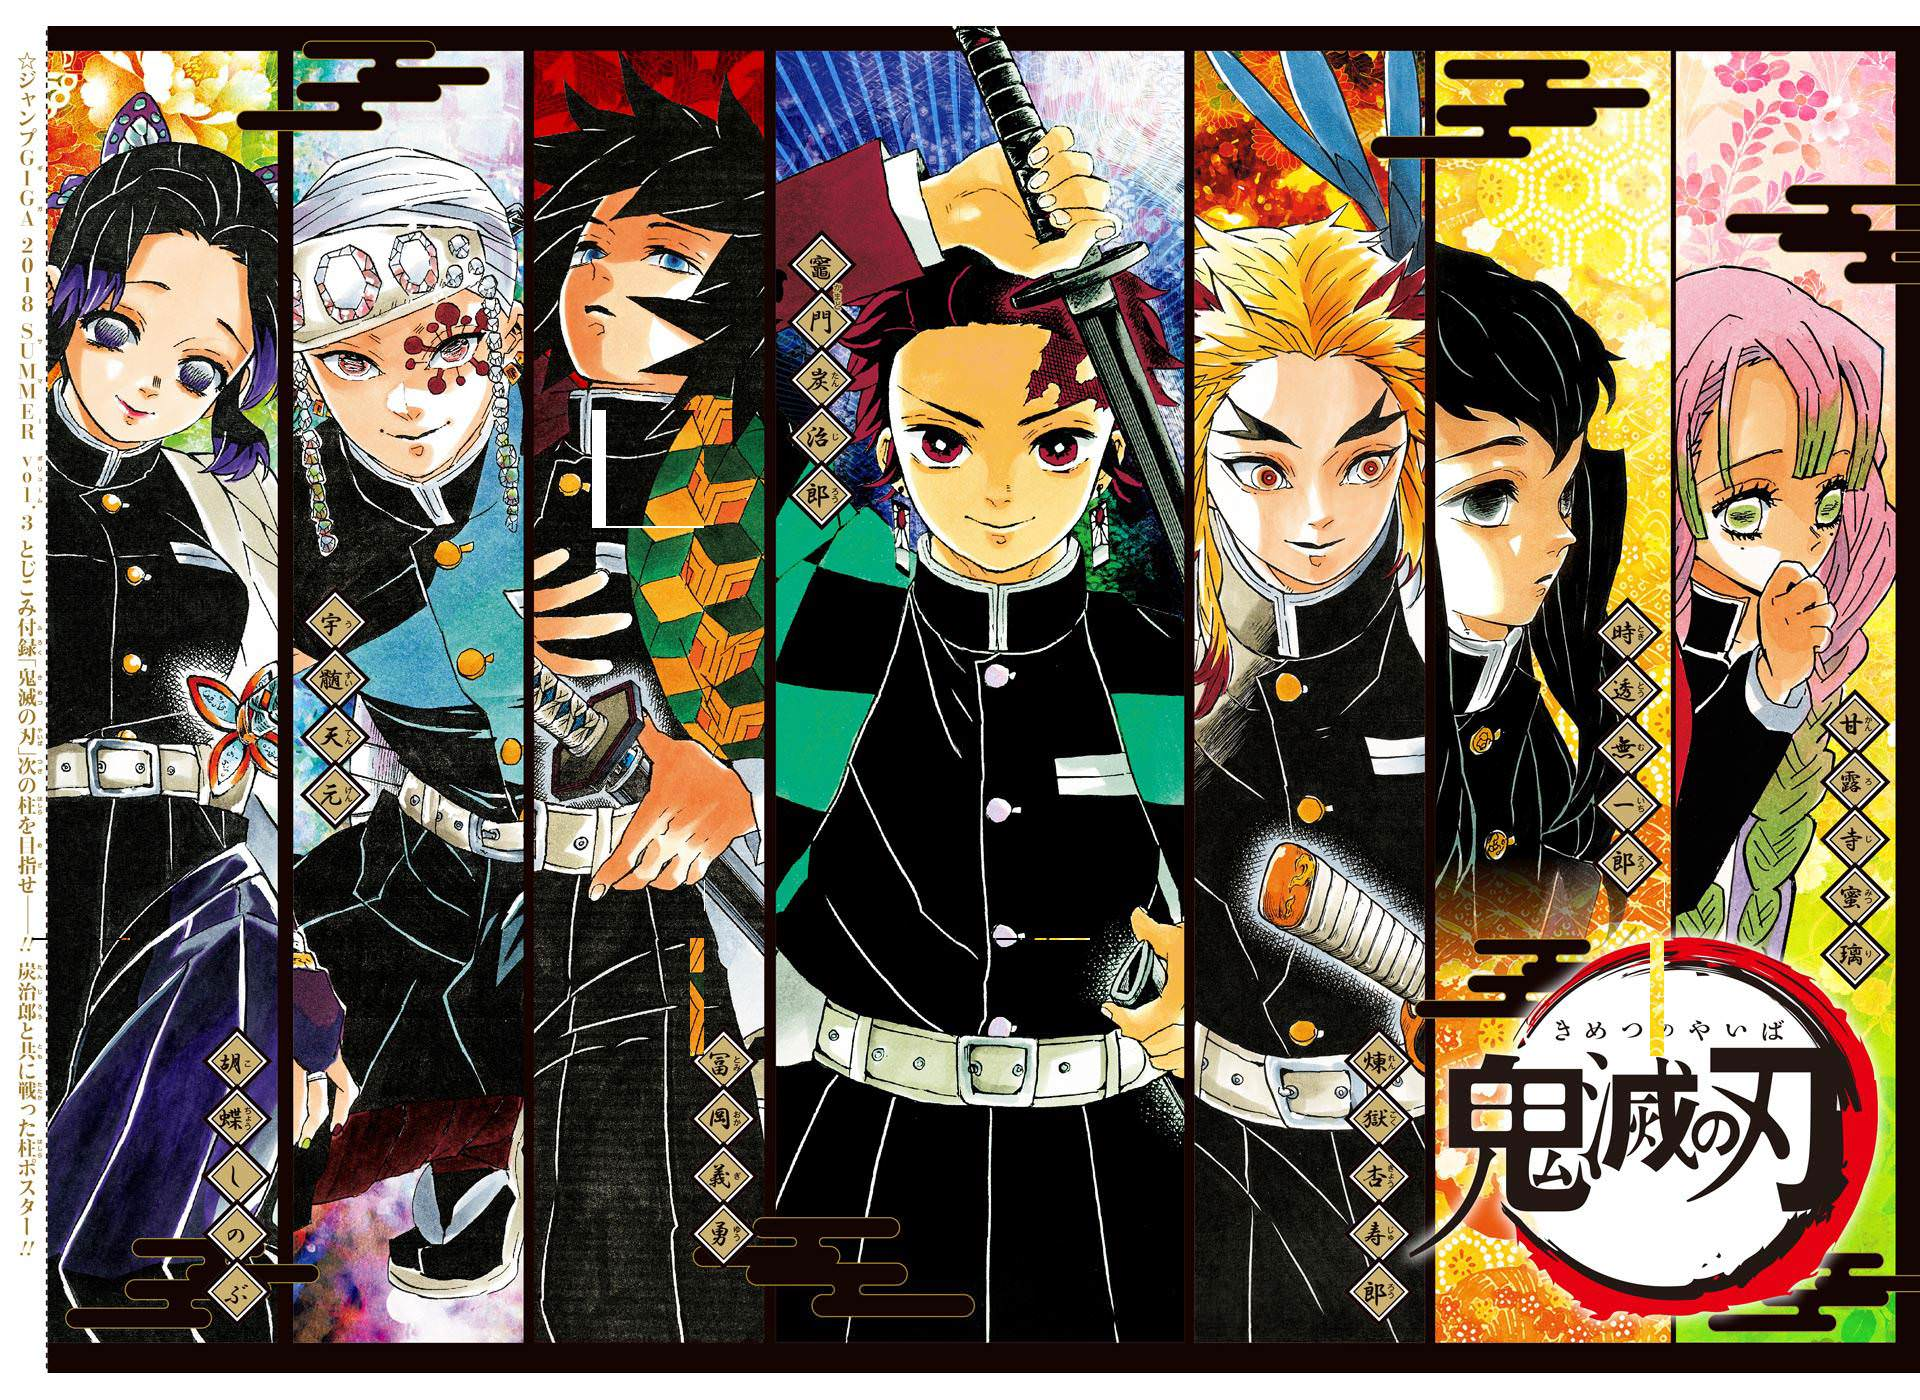 Kimetsu no Yaiba TV Anime Movie Announced with a new Key Visual